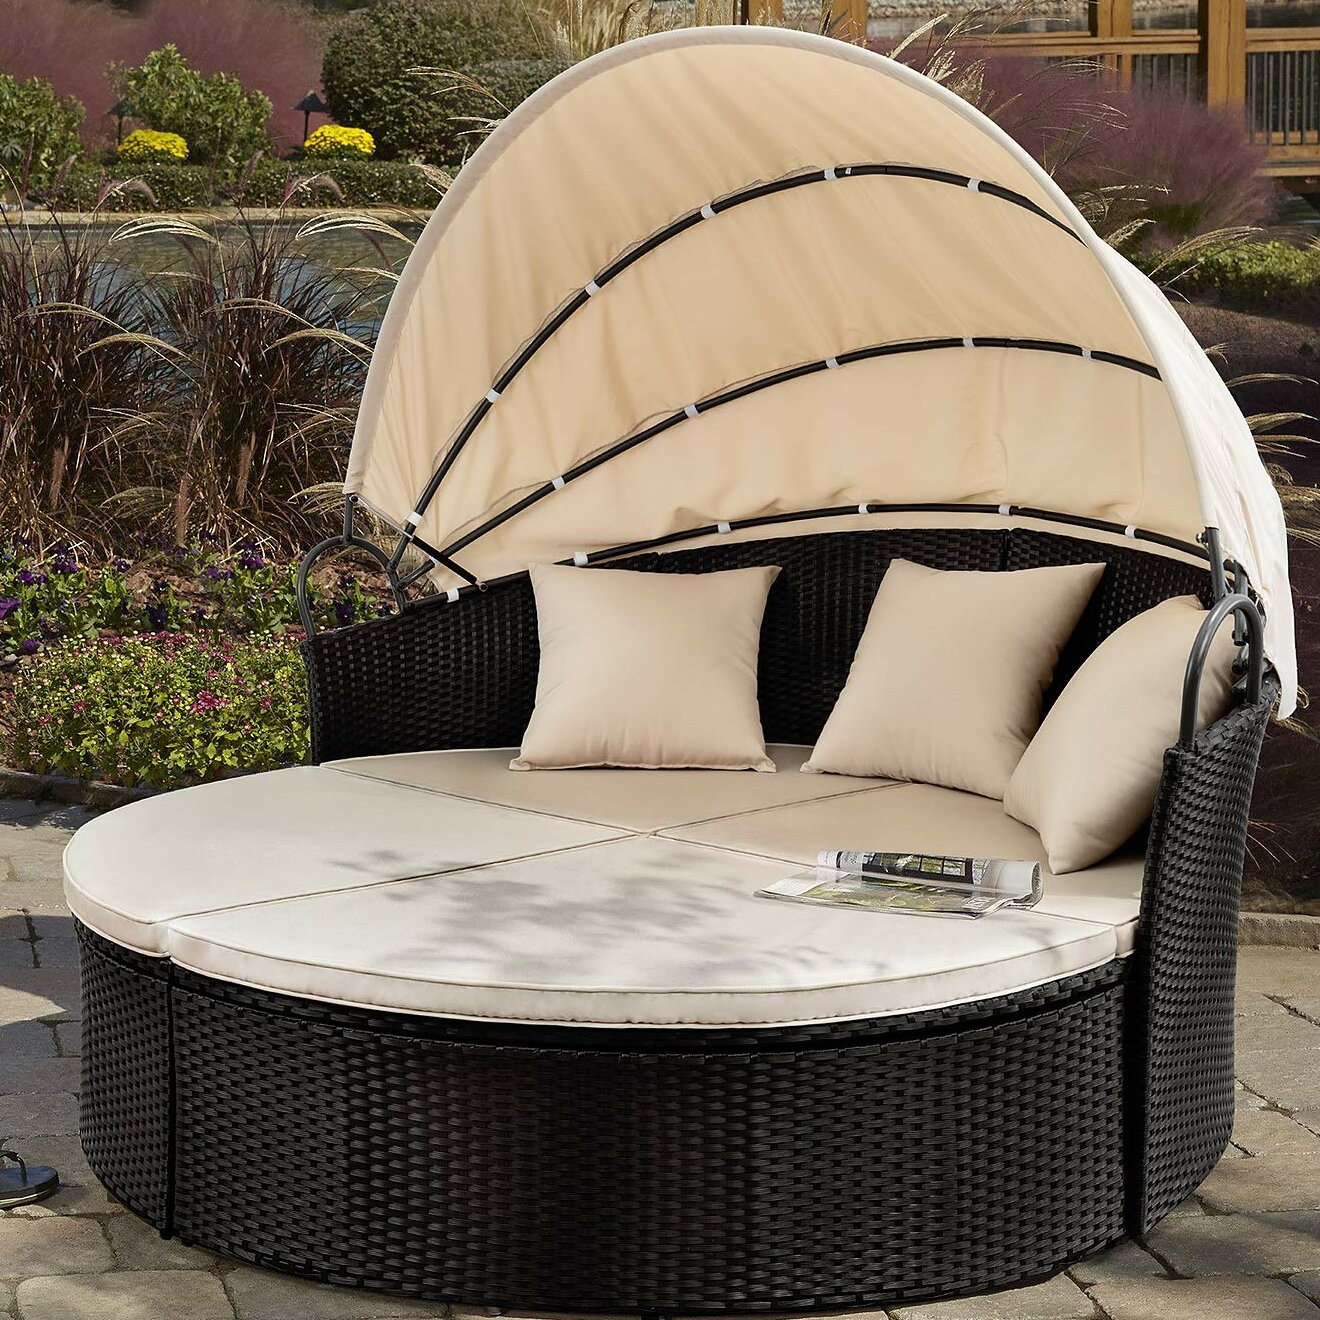 Arlmont Co Gatun Round Patio Daybed With Cushions Reviews